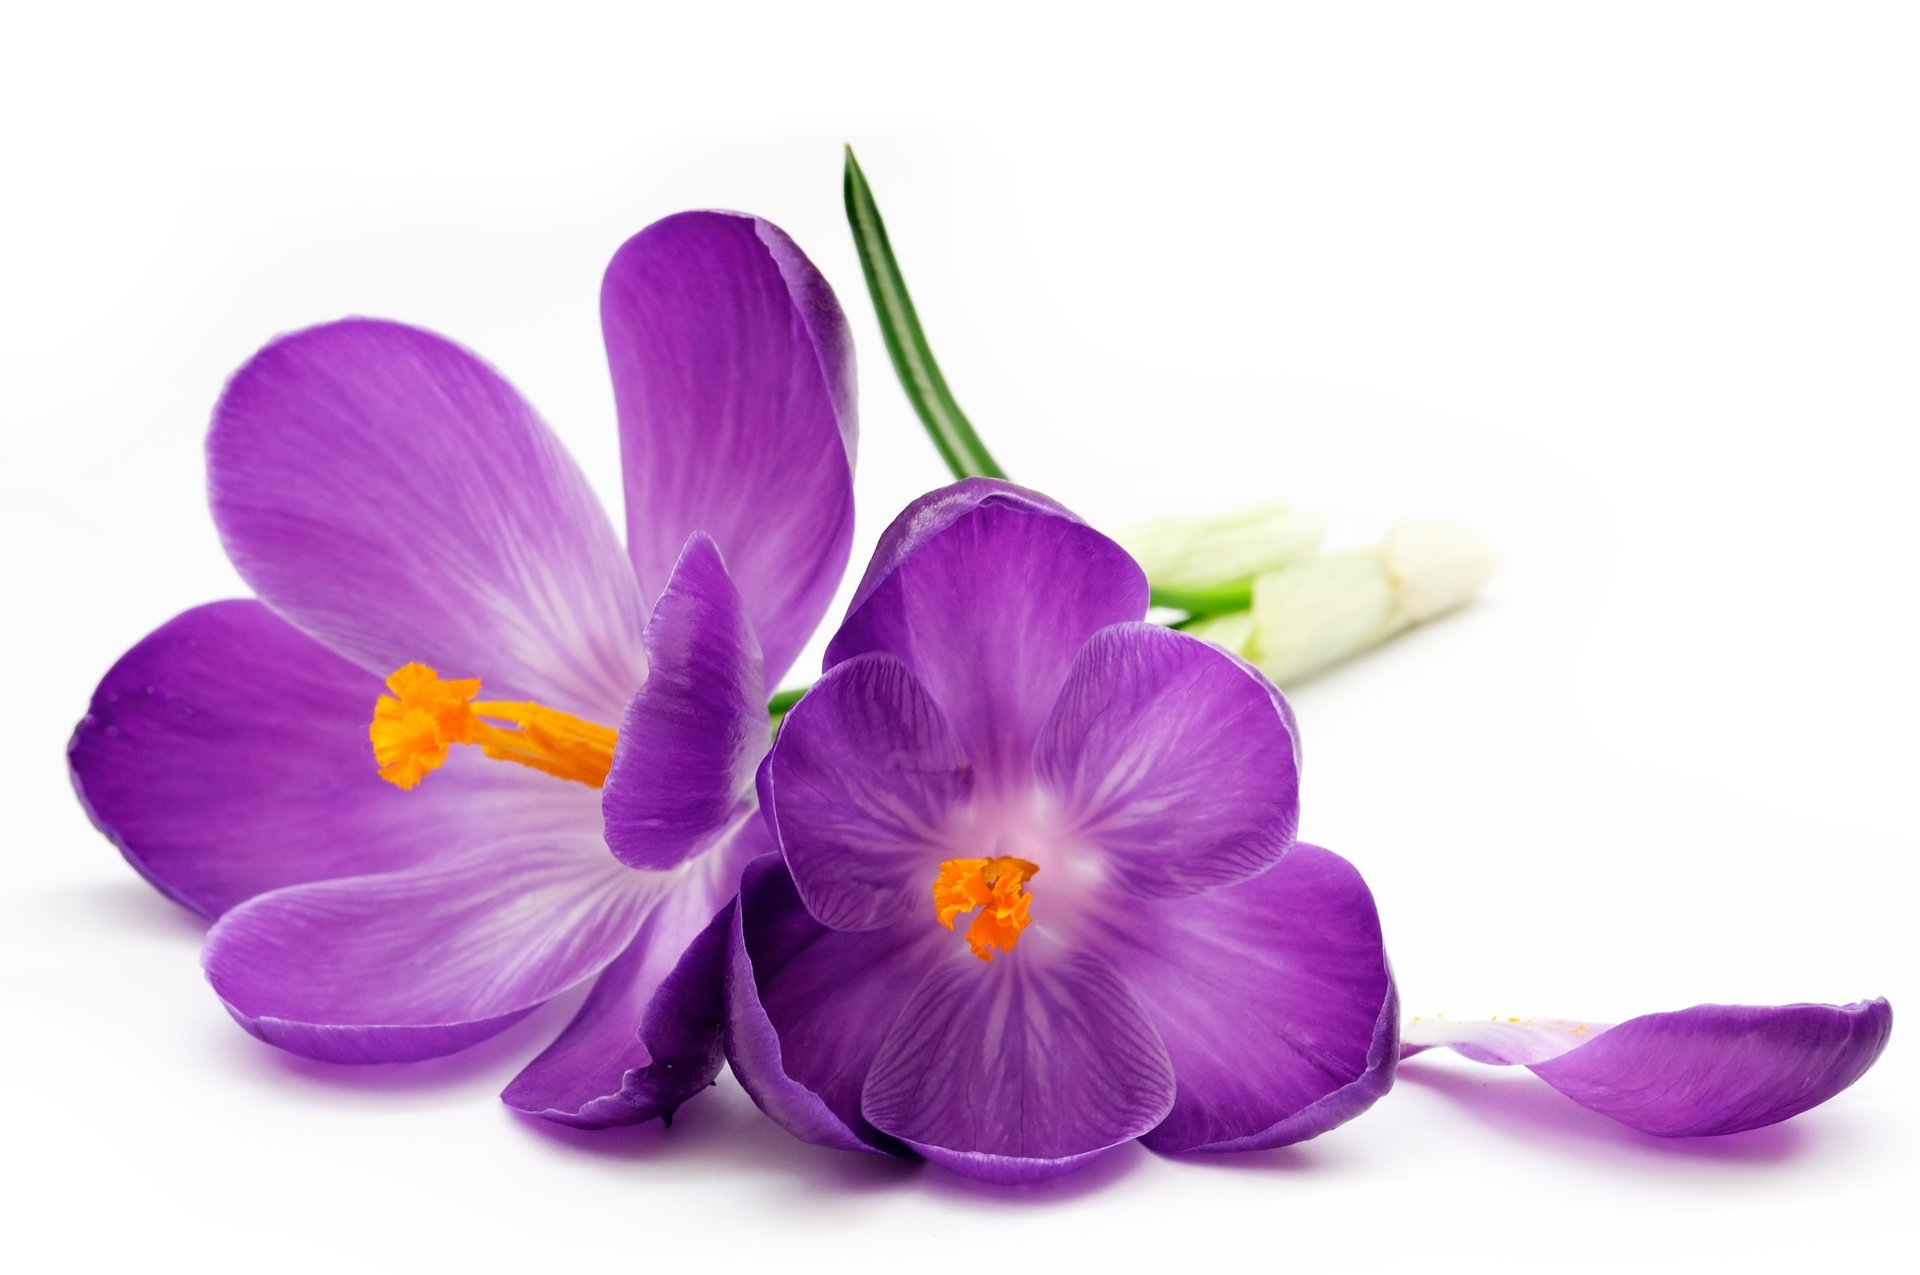 crocus-purple-petals-white-background